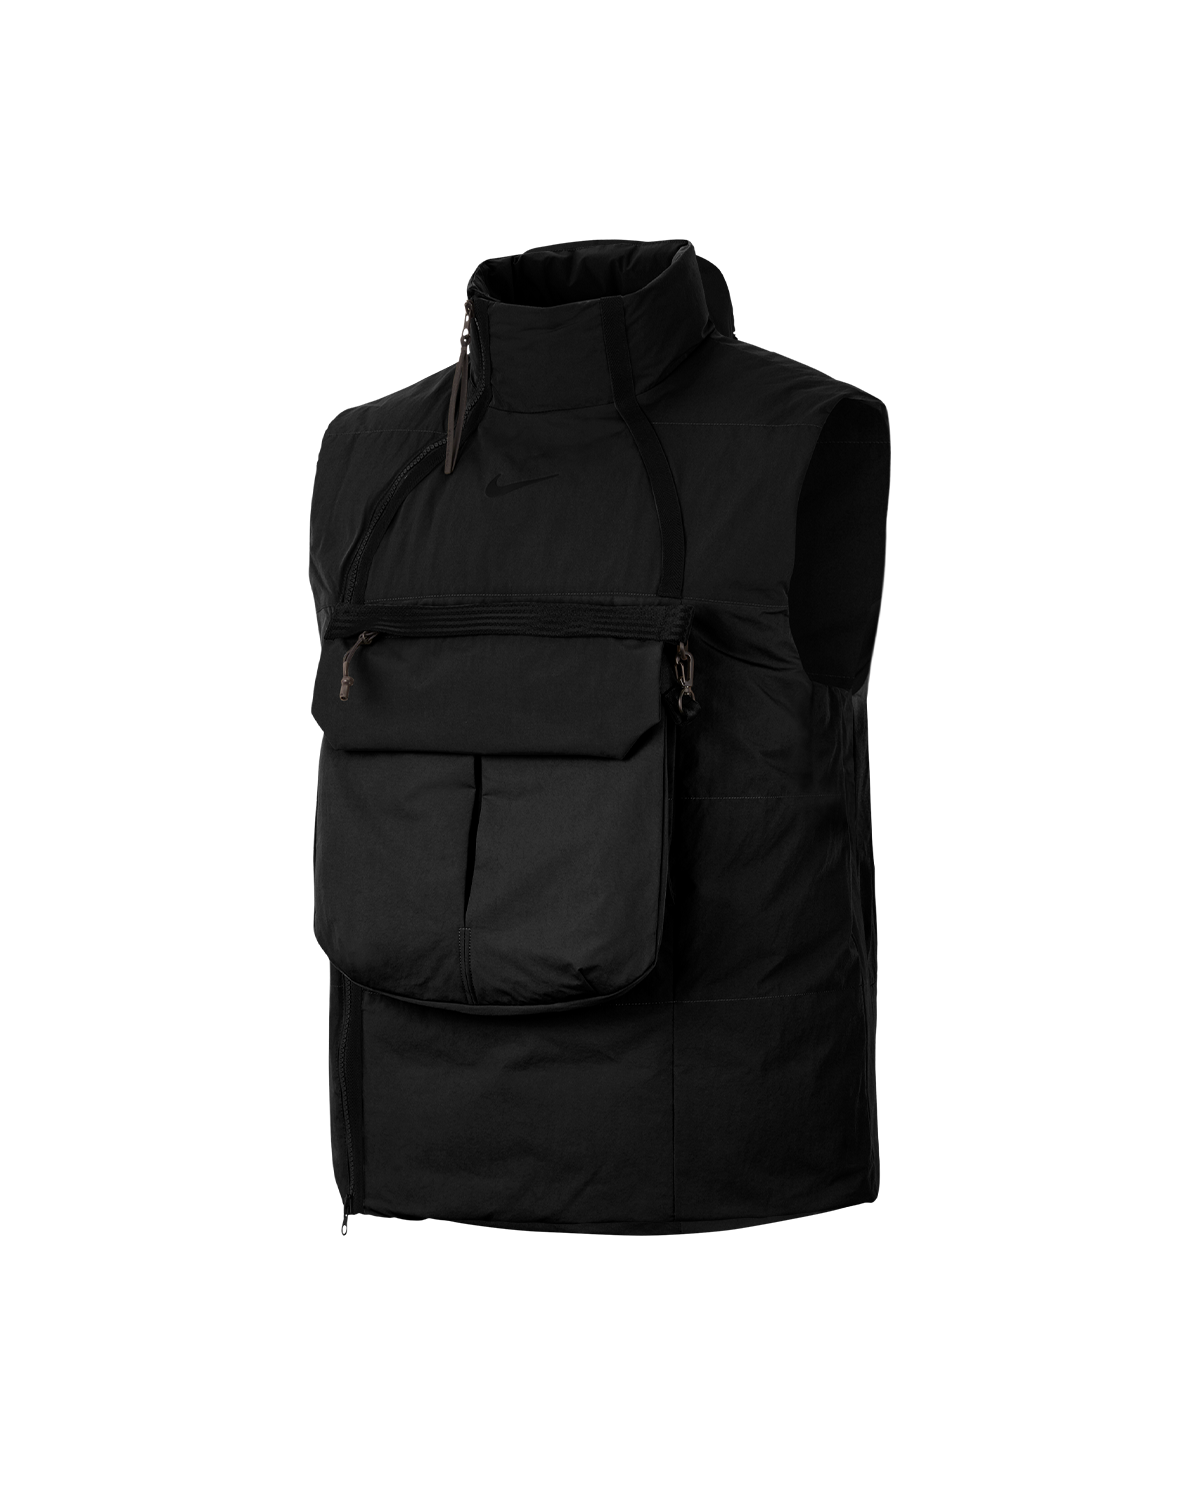 Sportswear Tech Pack Synthetic-Fill Vest Black/Black/Black